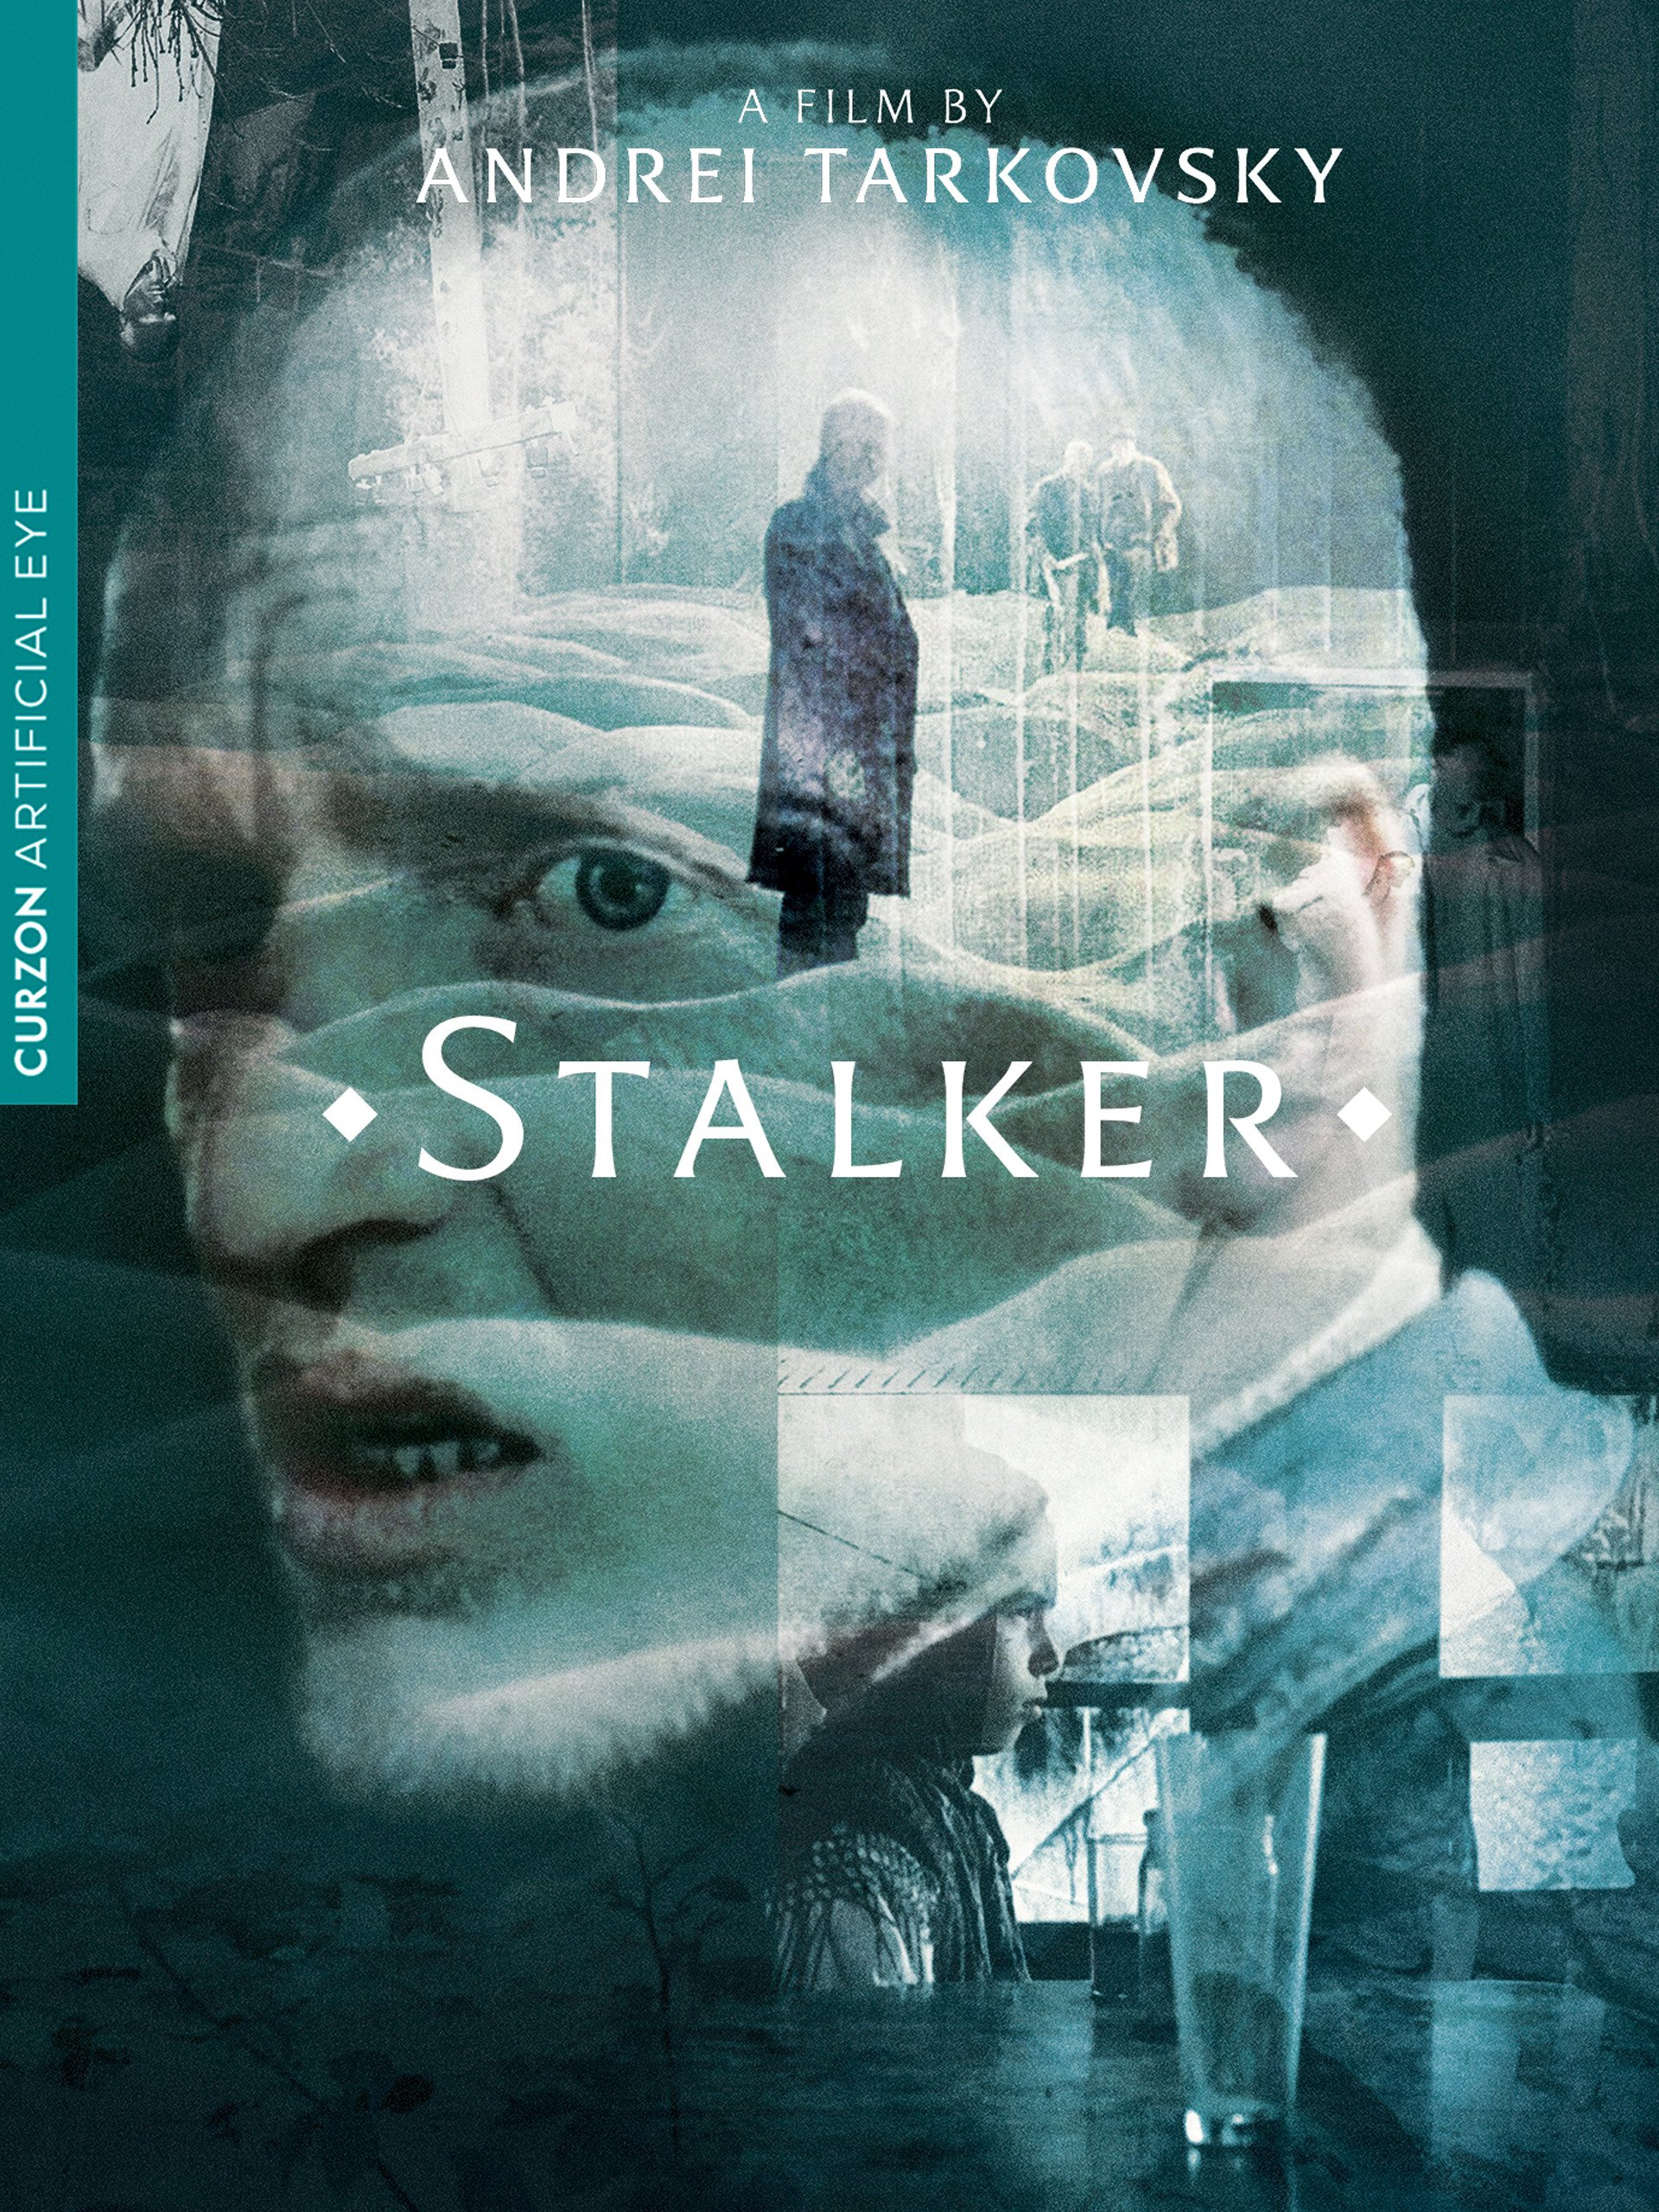 The network posted Tarkovsky films for free viewing 25